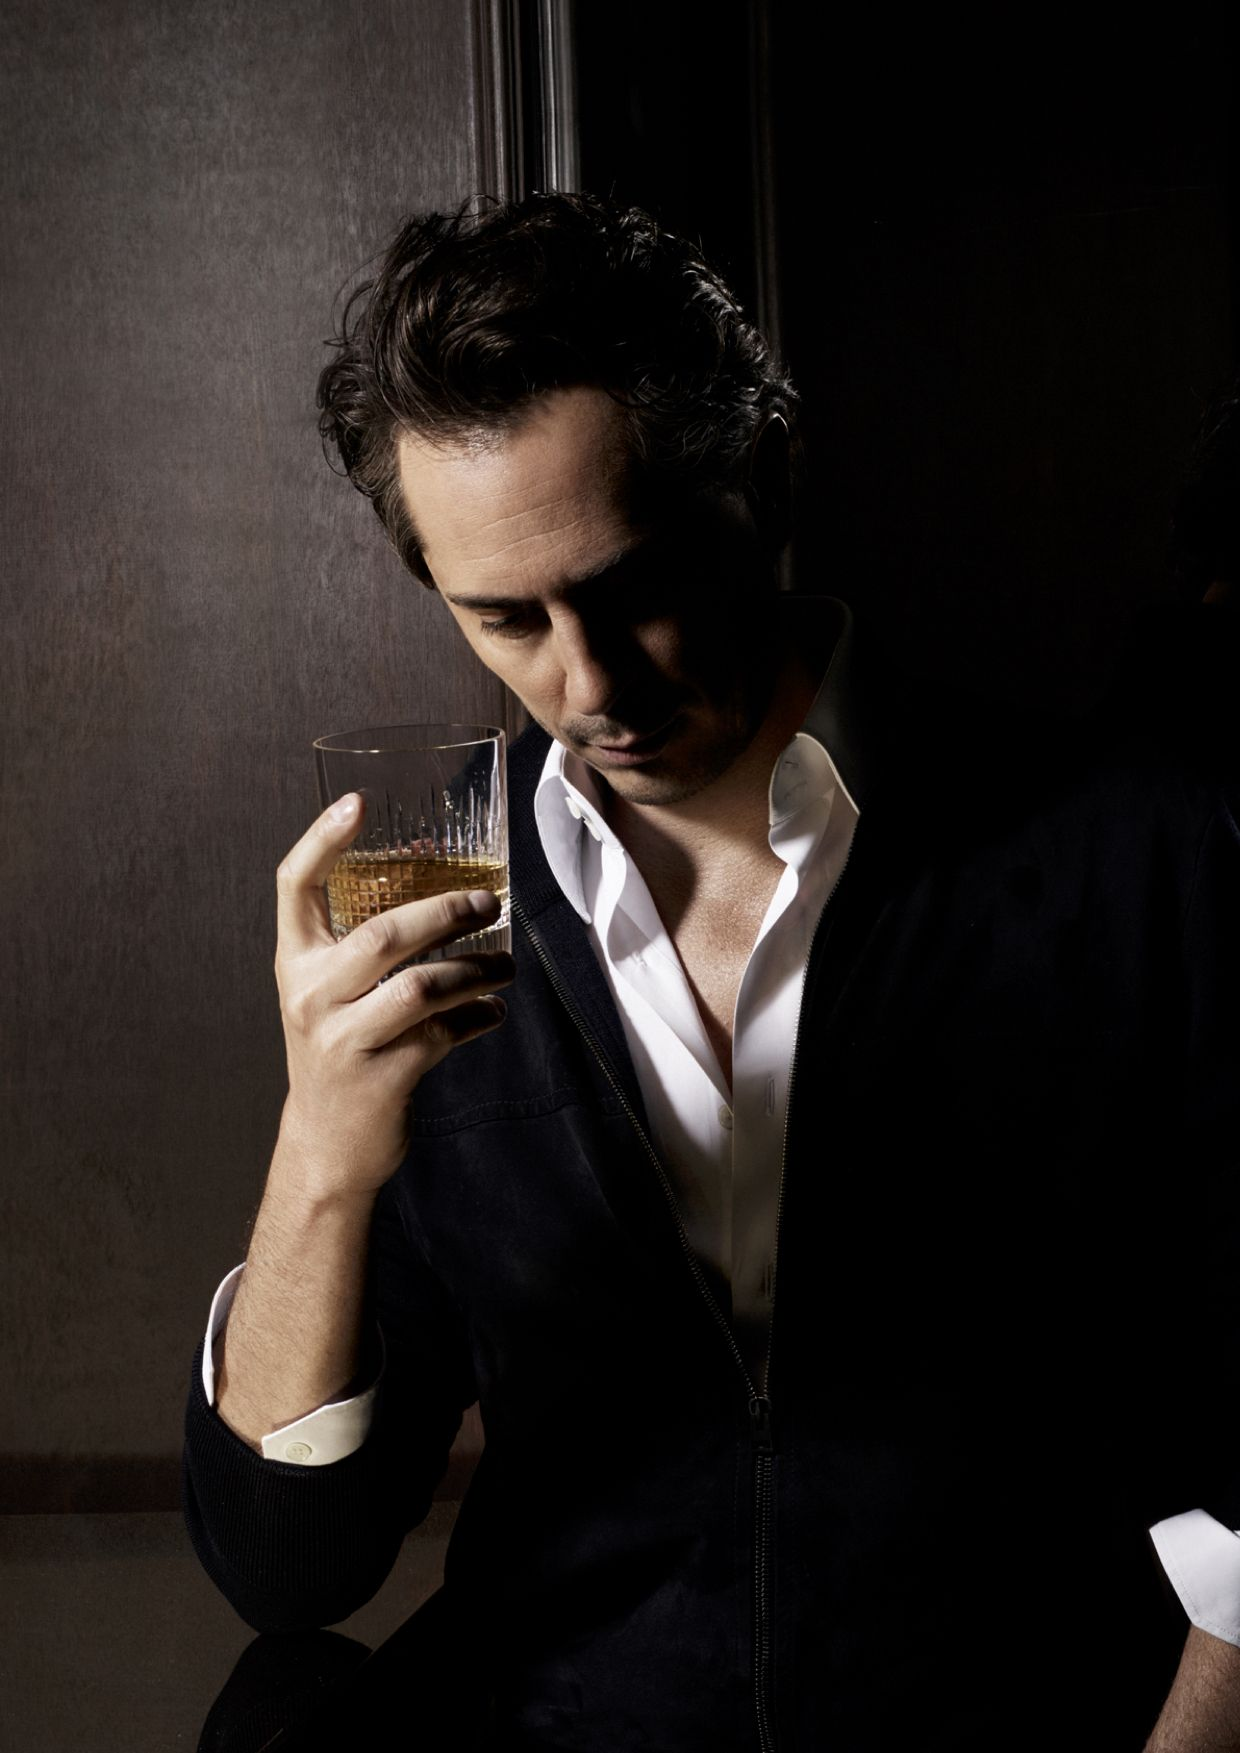 A Legacy Of Luxury: How Cognac Heir Kilian Hennessy Built His Perfume Empire